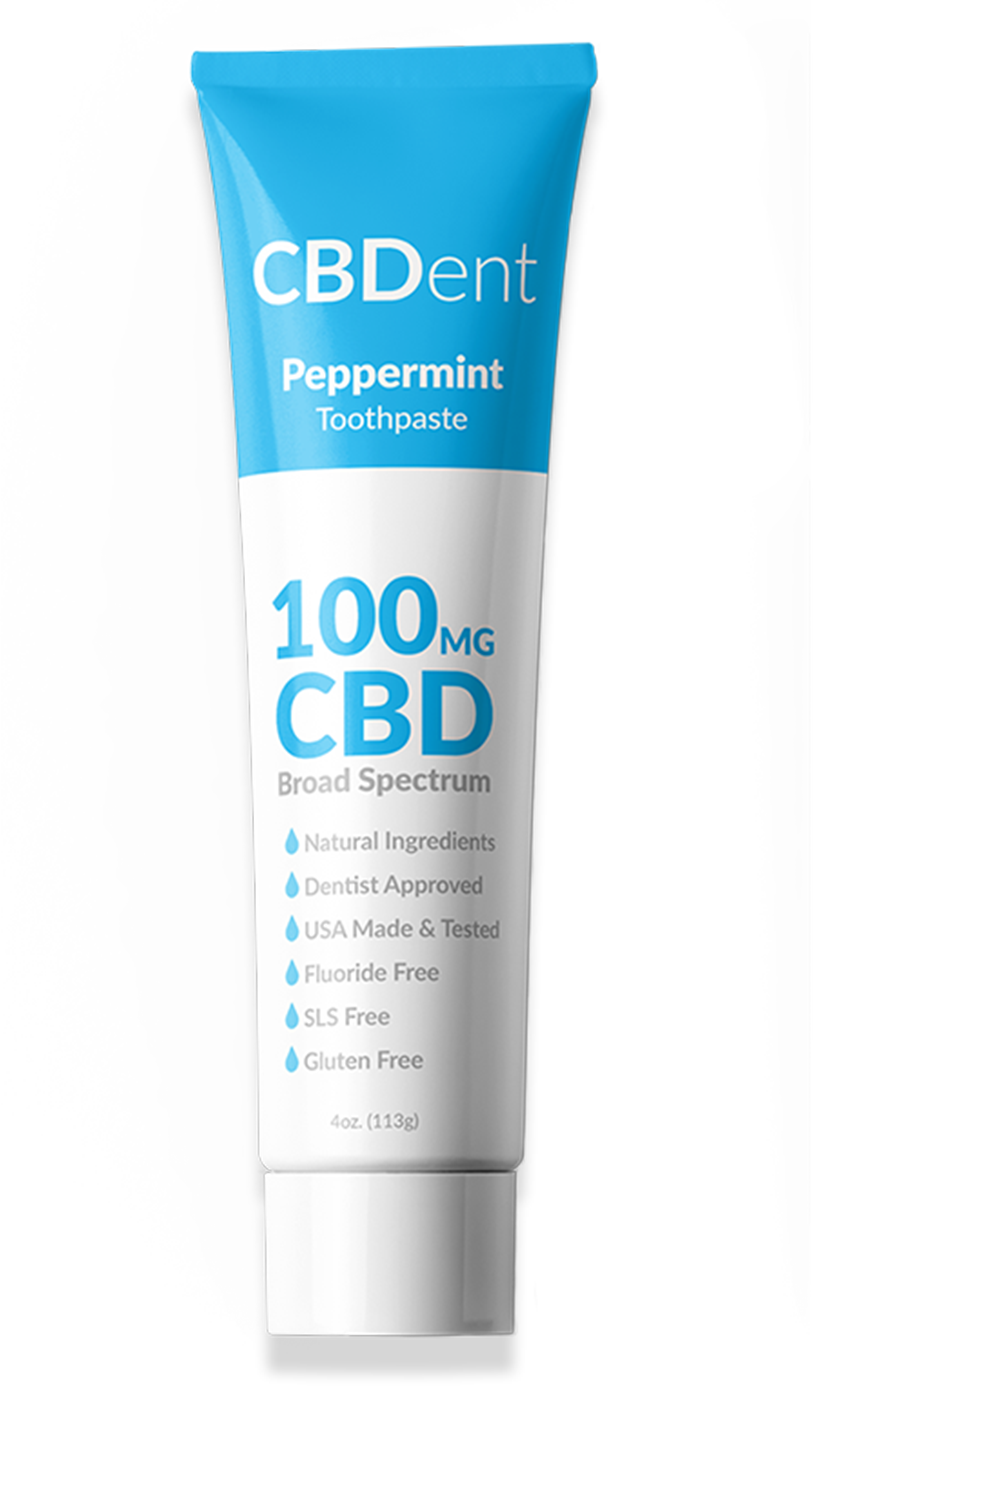 CBDent Peppermint Toothpaste - 100mg